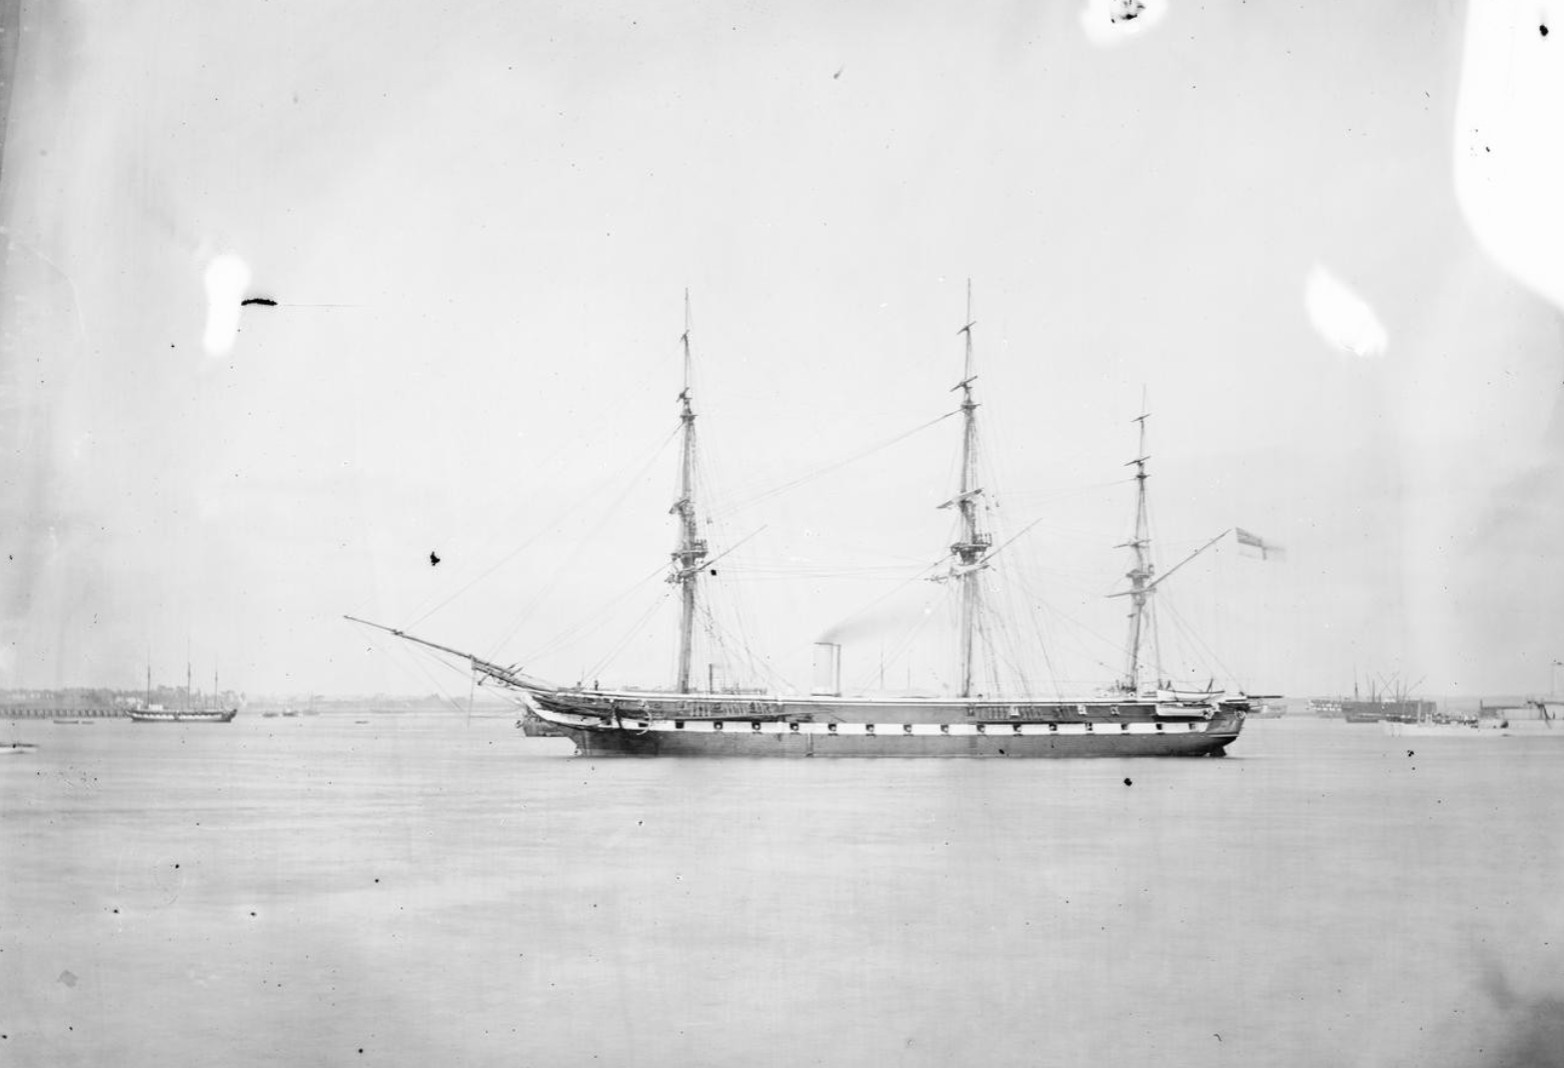 HMS Immortalite